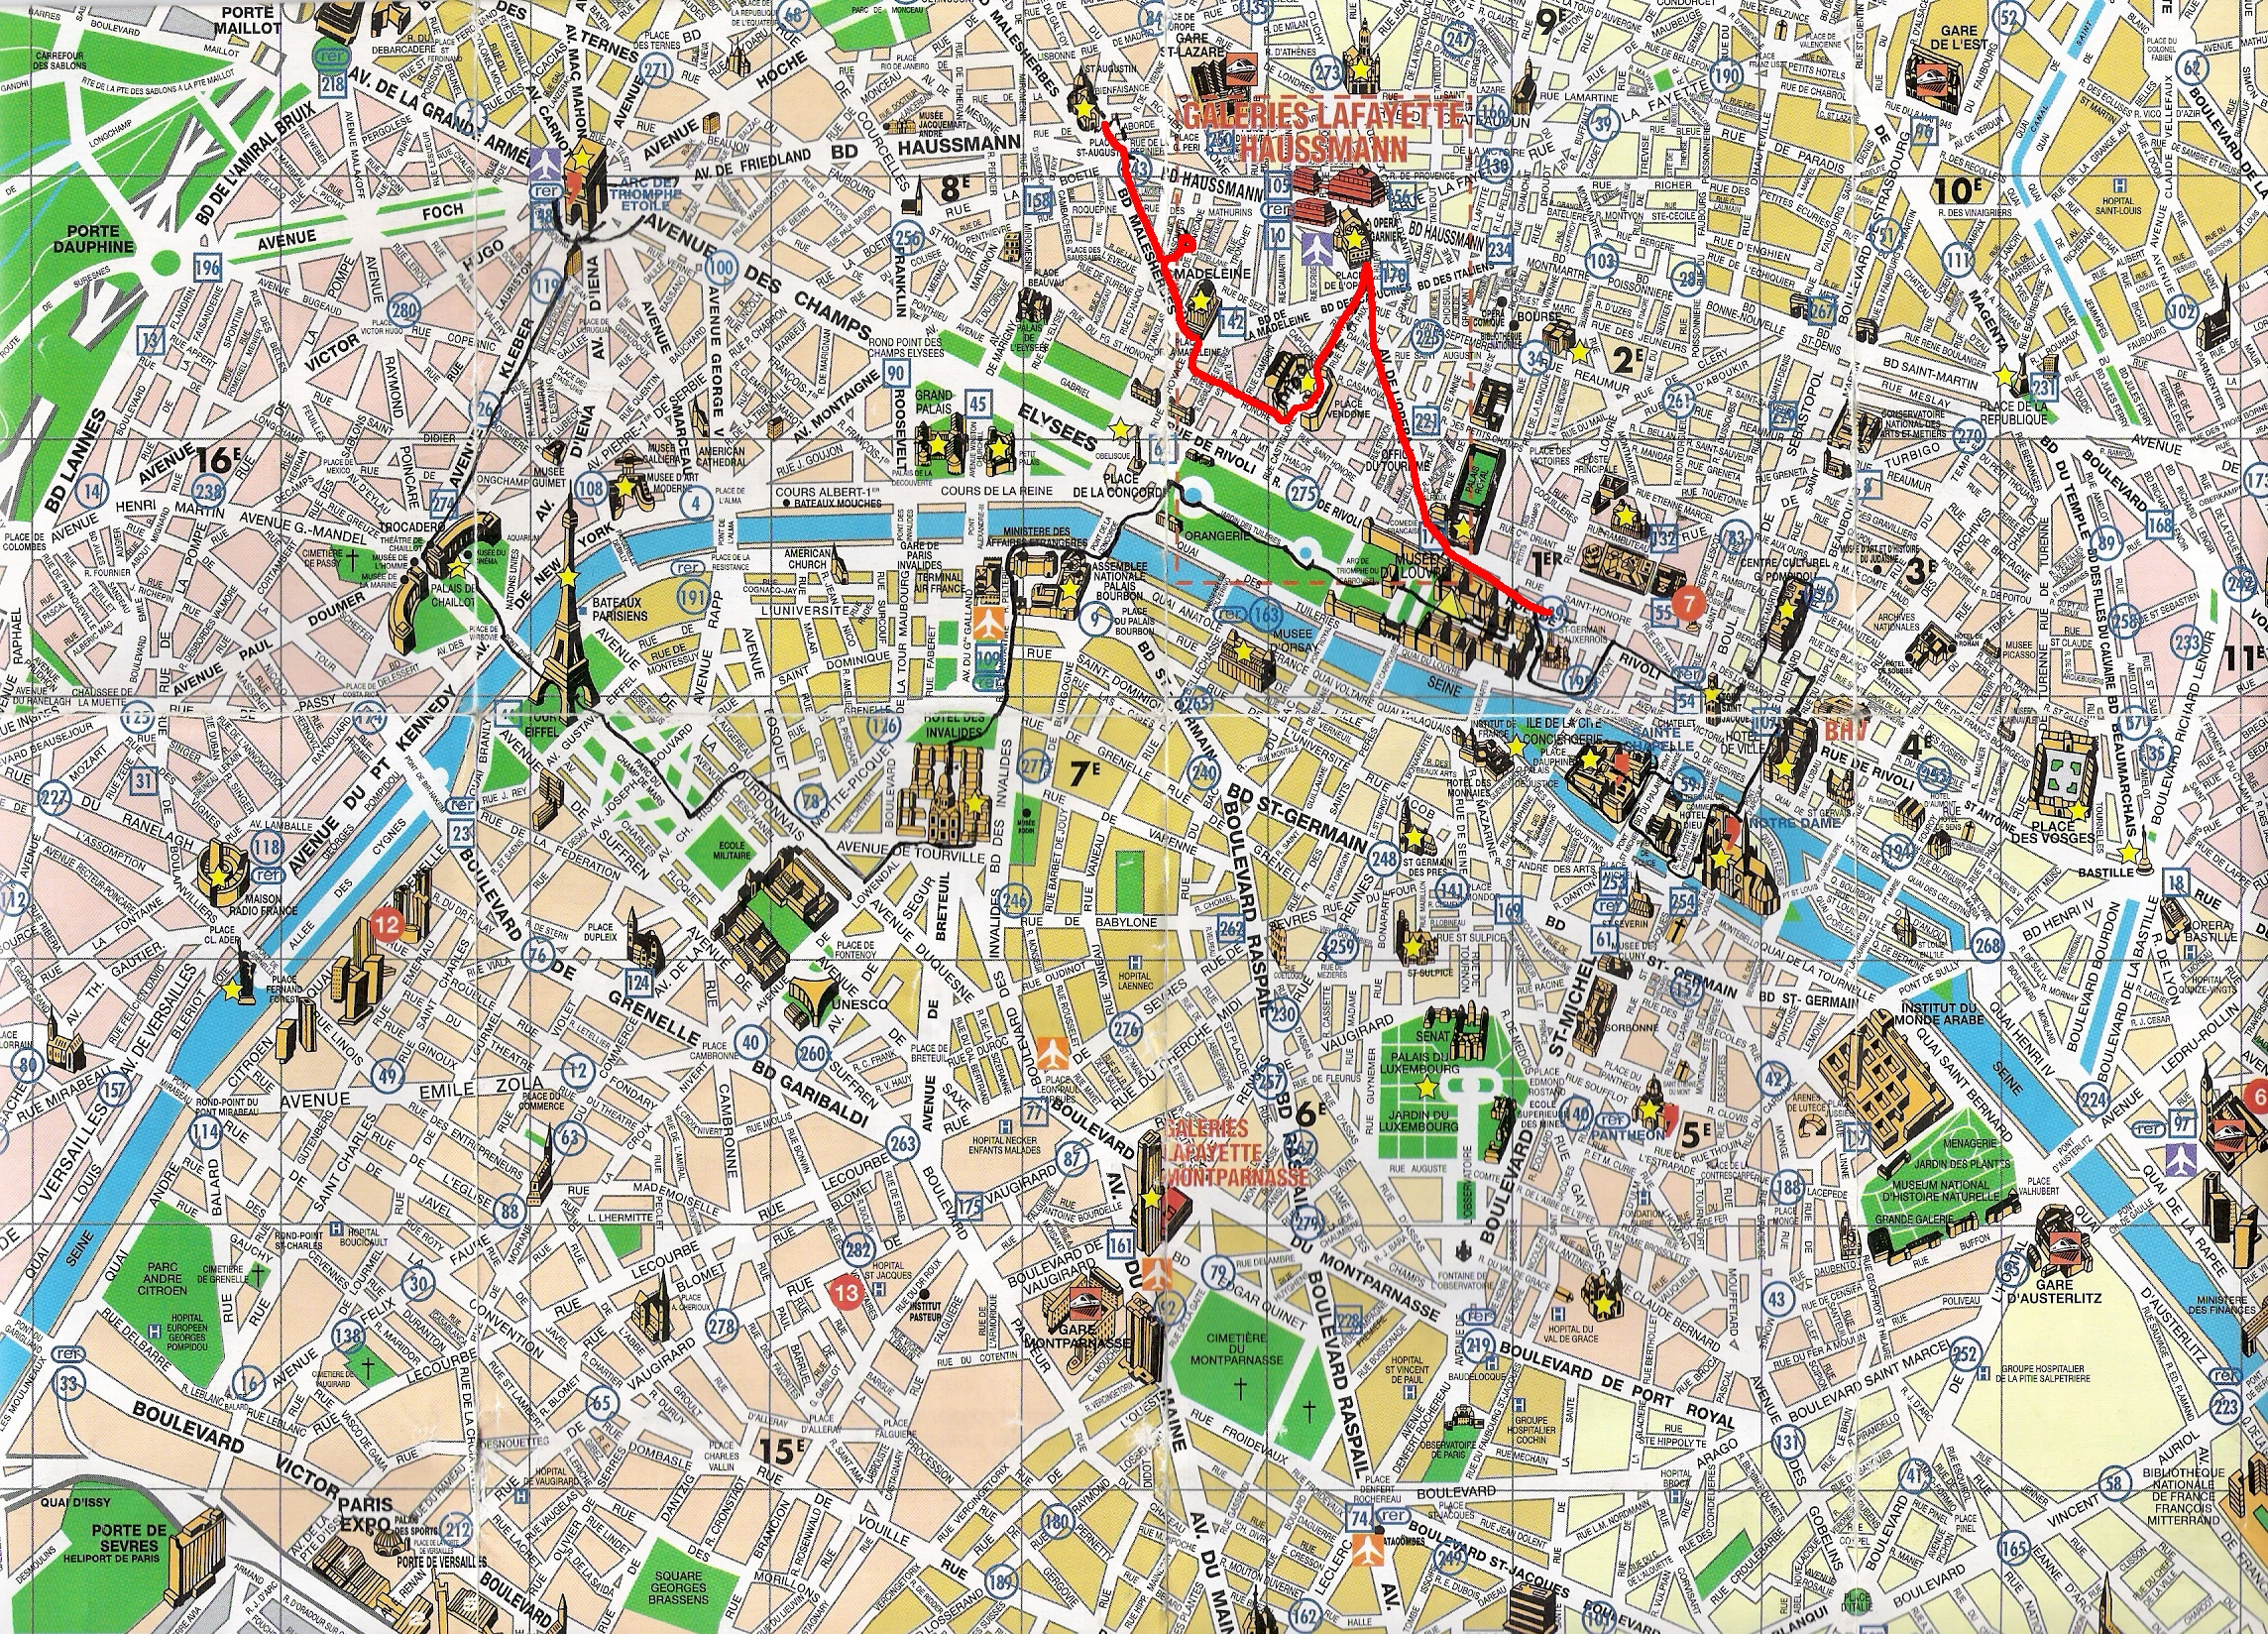 Map Of Paris Attractions Printable Download Map Paris Tourist - Paris Printable Maps For Tourists